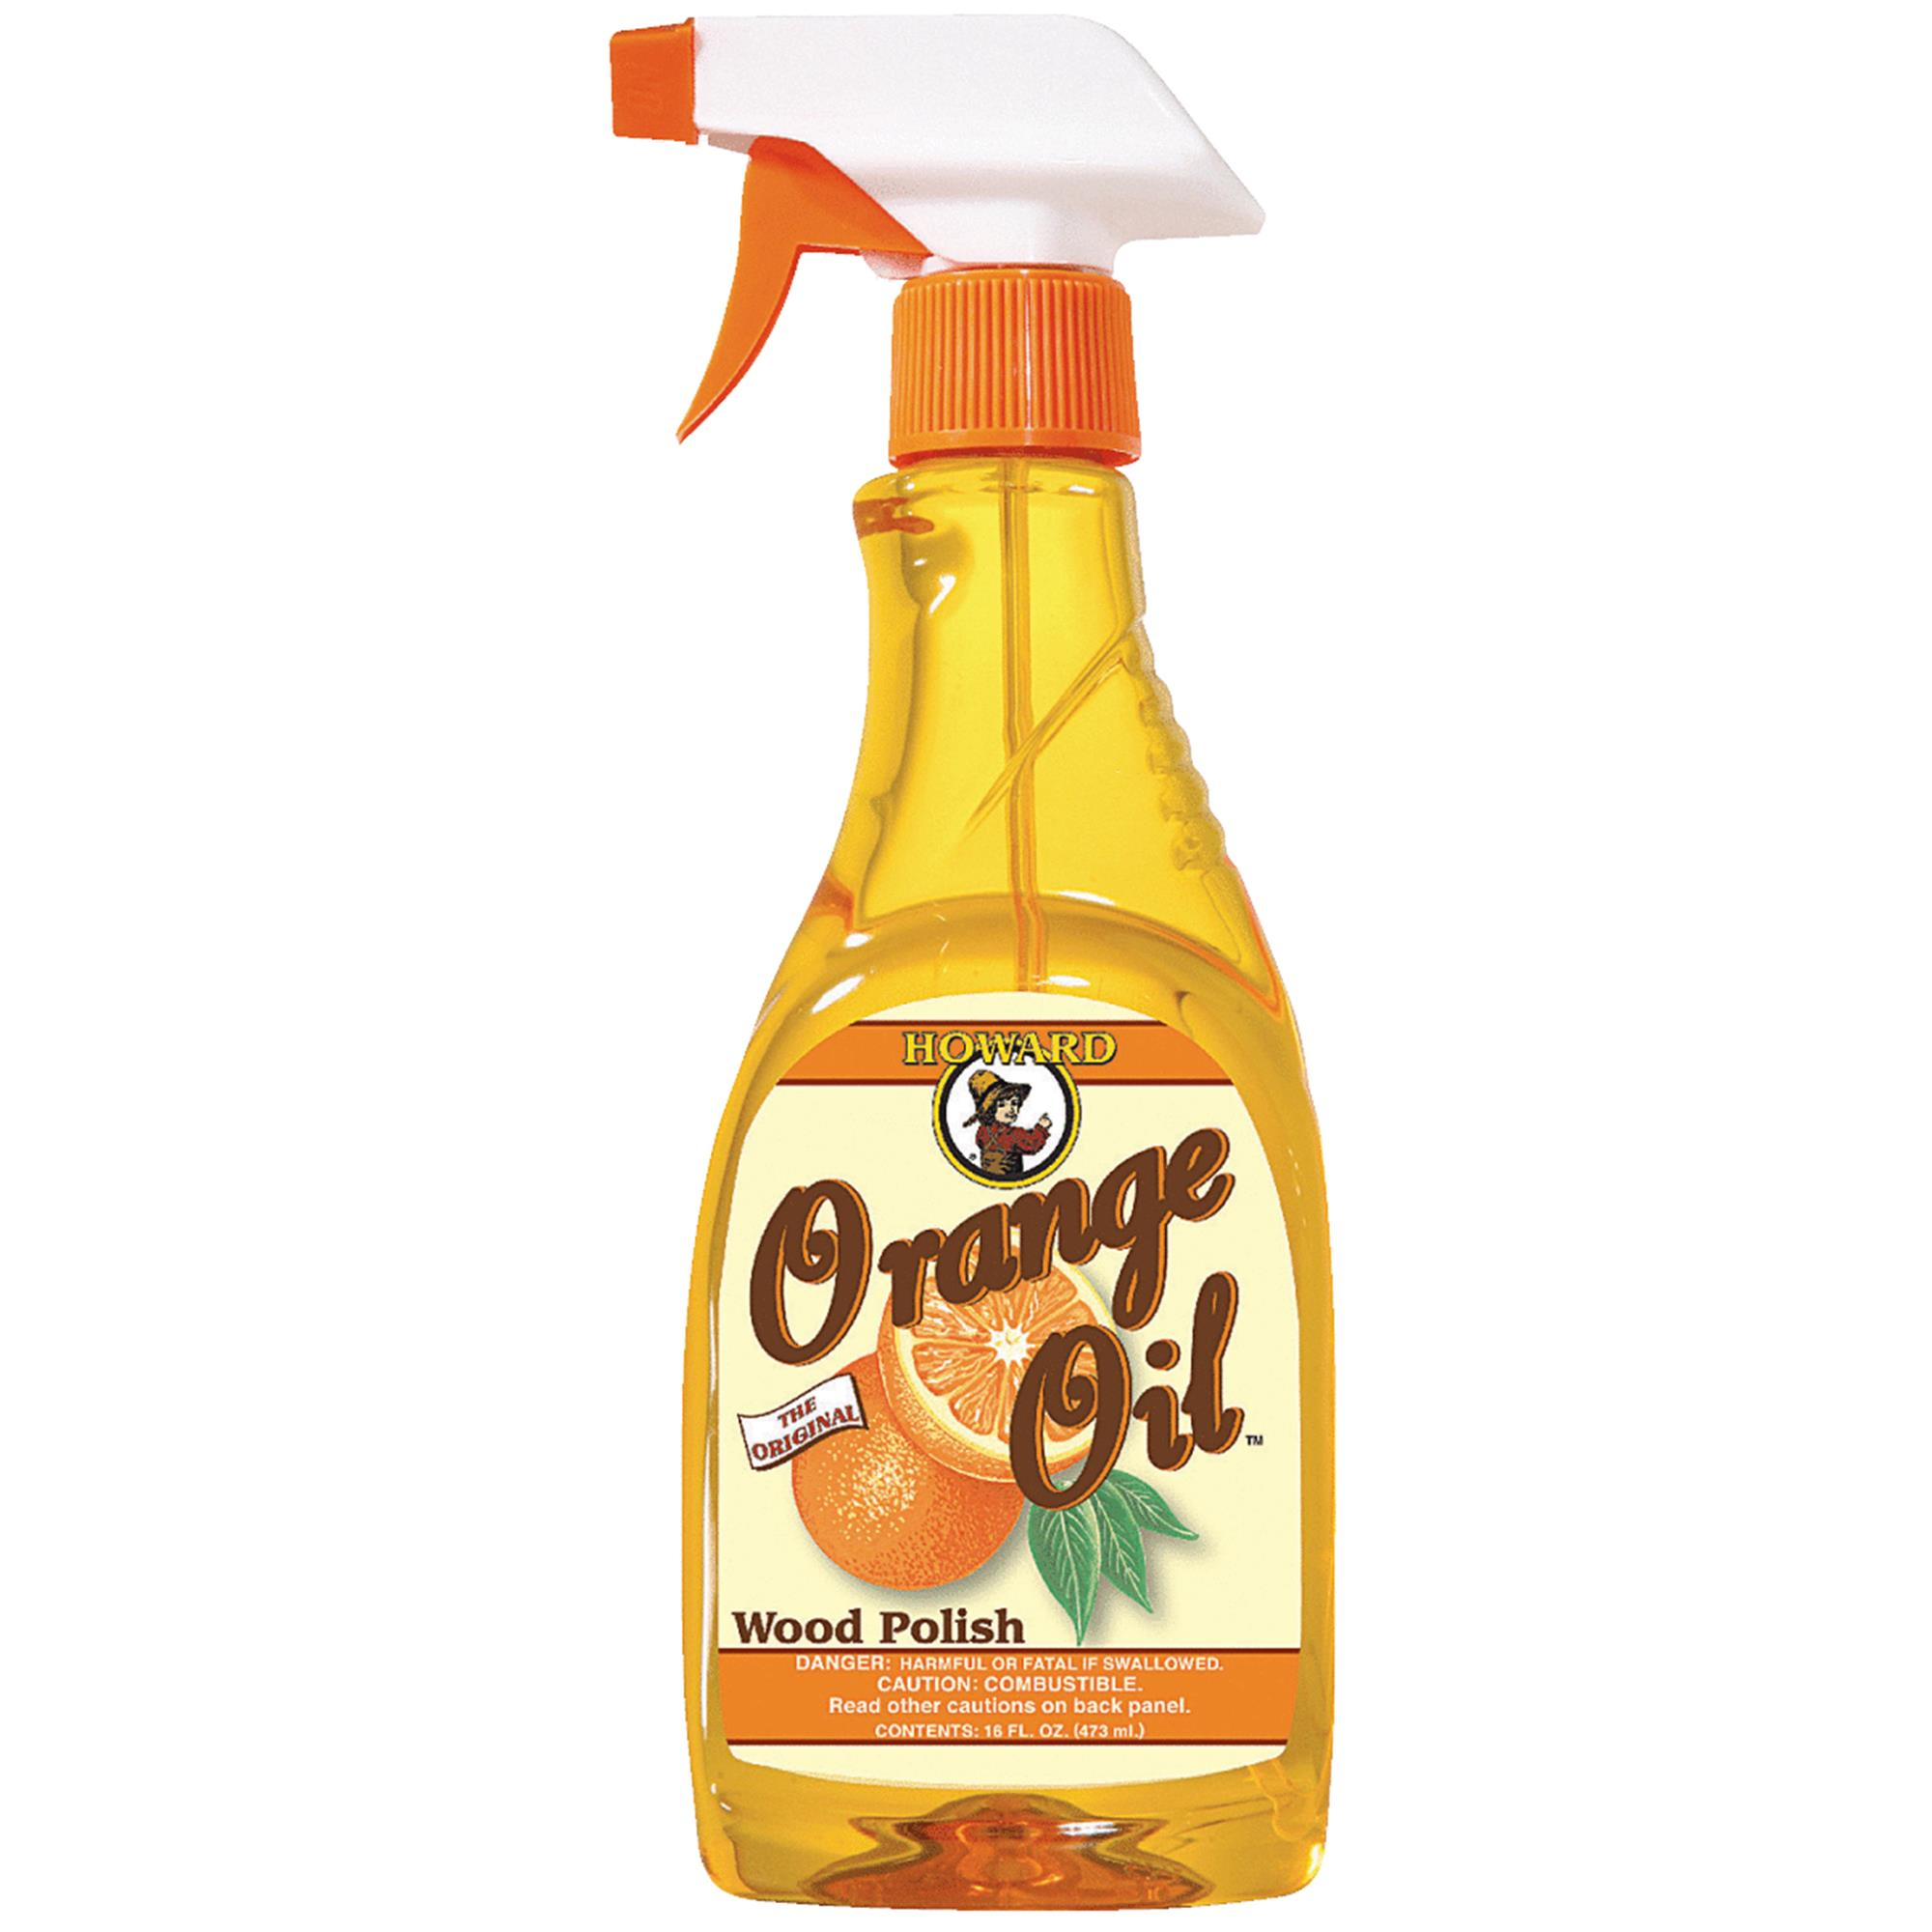 Howard Orange Oil Spray